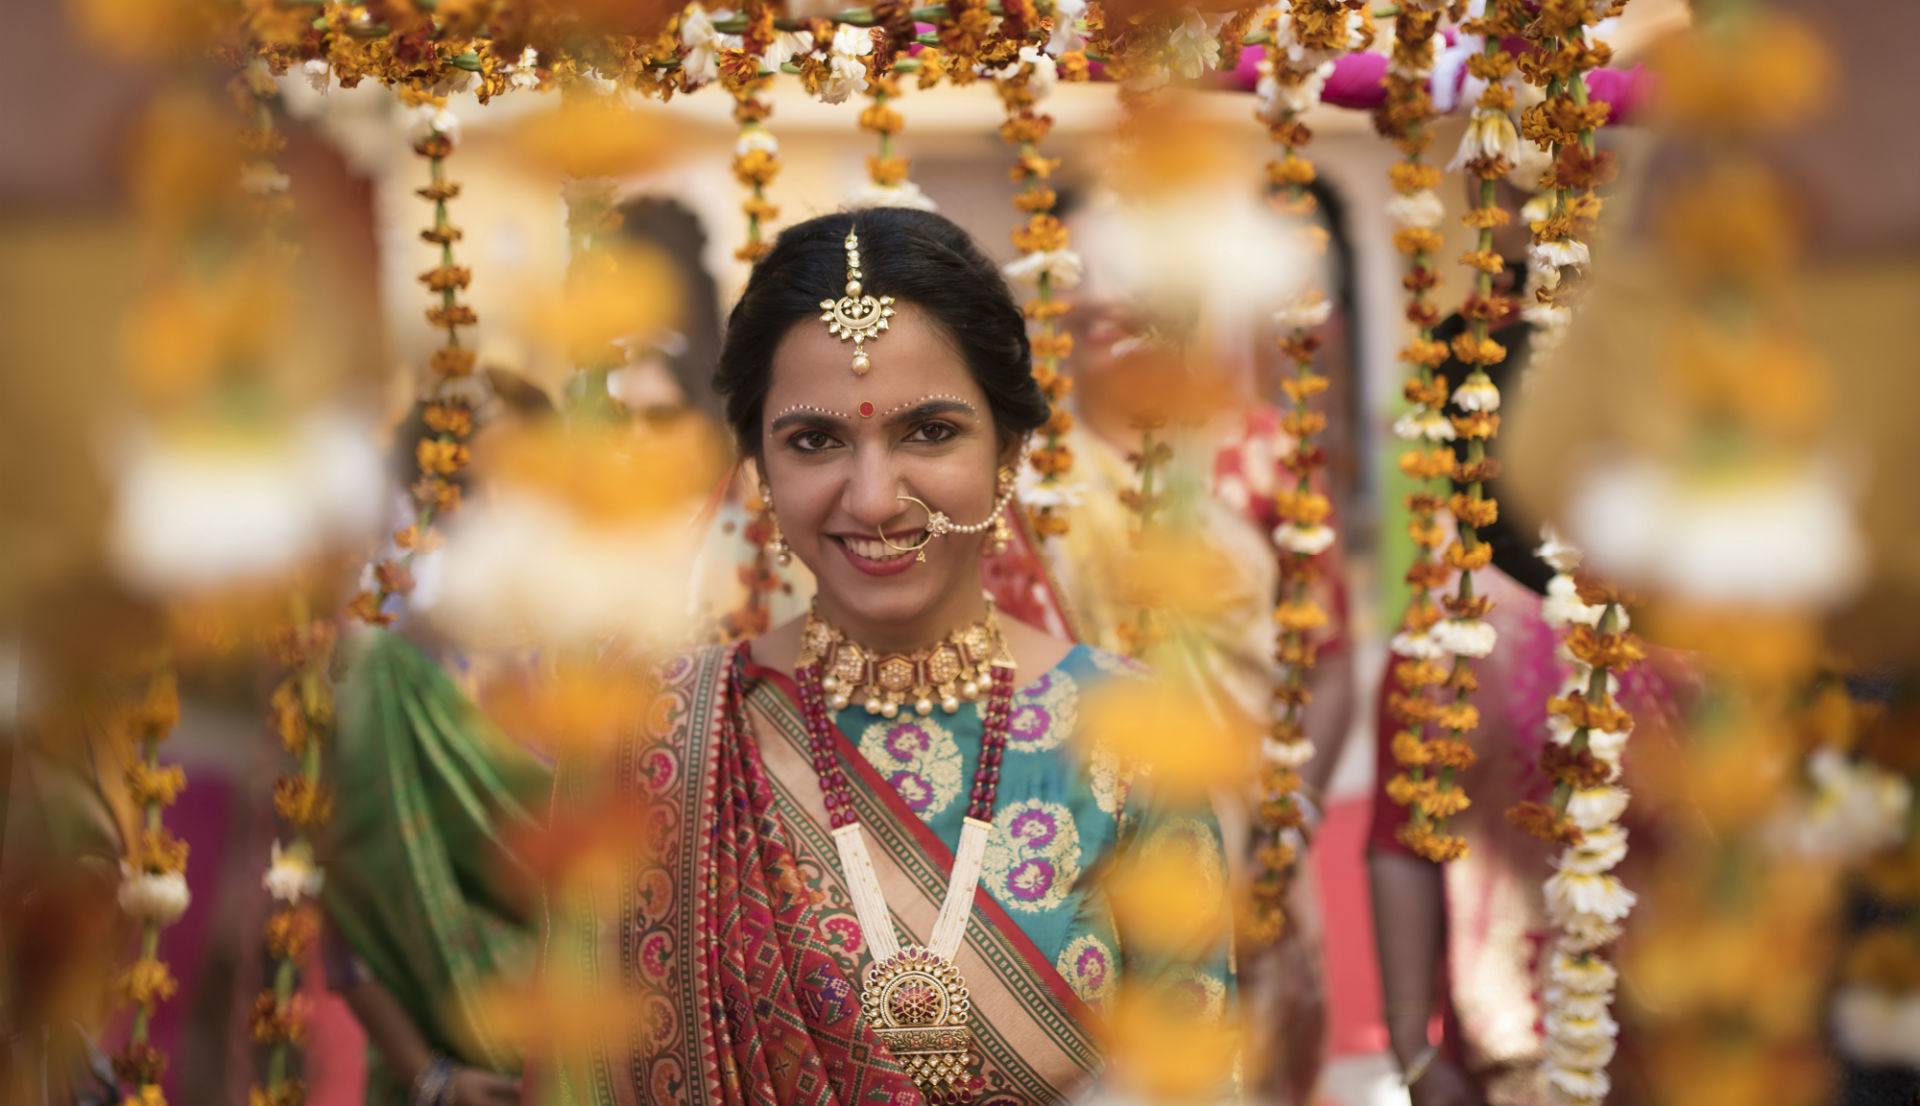 Theofilos Venardos Photography: Wedding in India